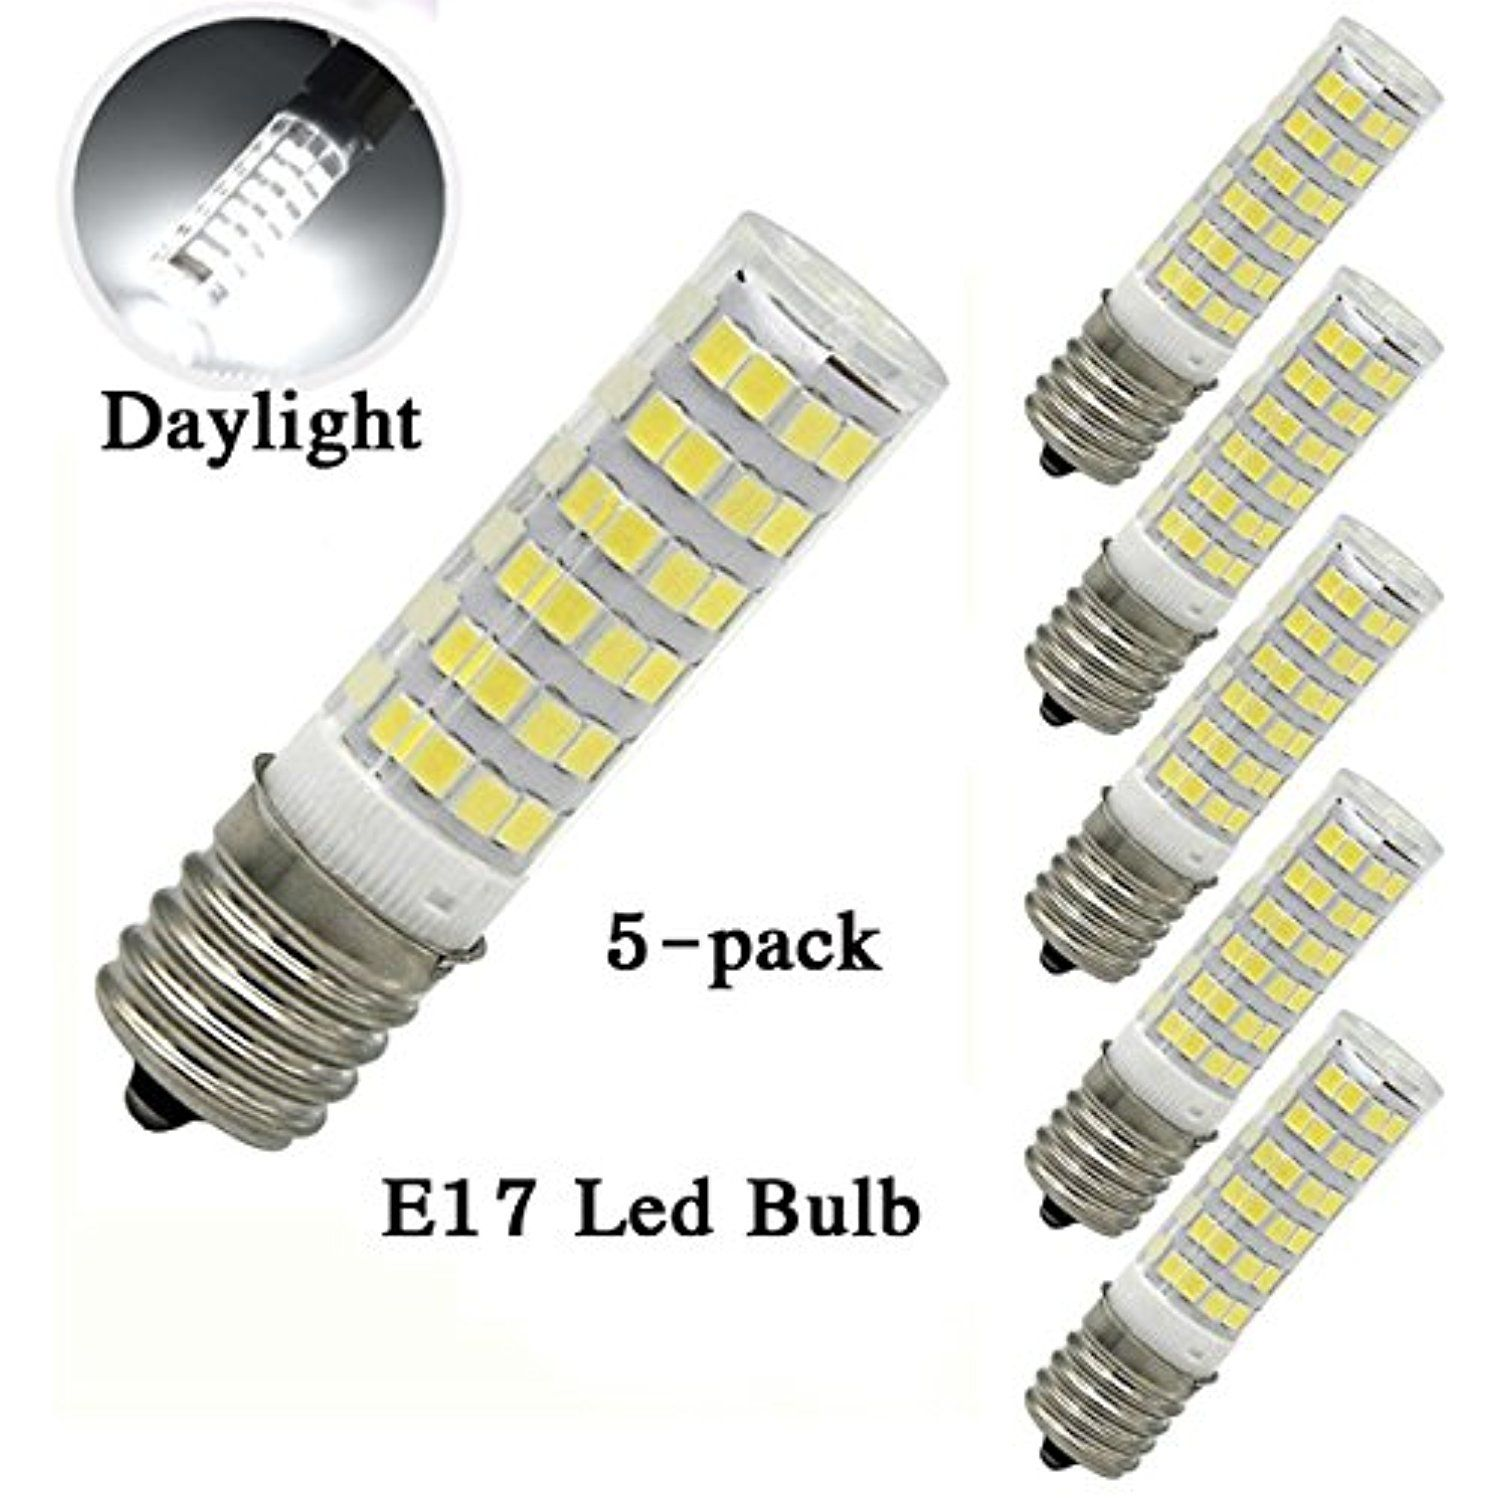 XYTGD Led E17 Bulb Dimmable for Ceiling fan 5W 110 120V 50W